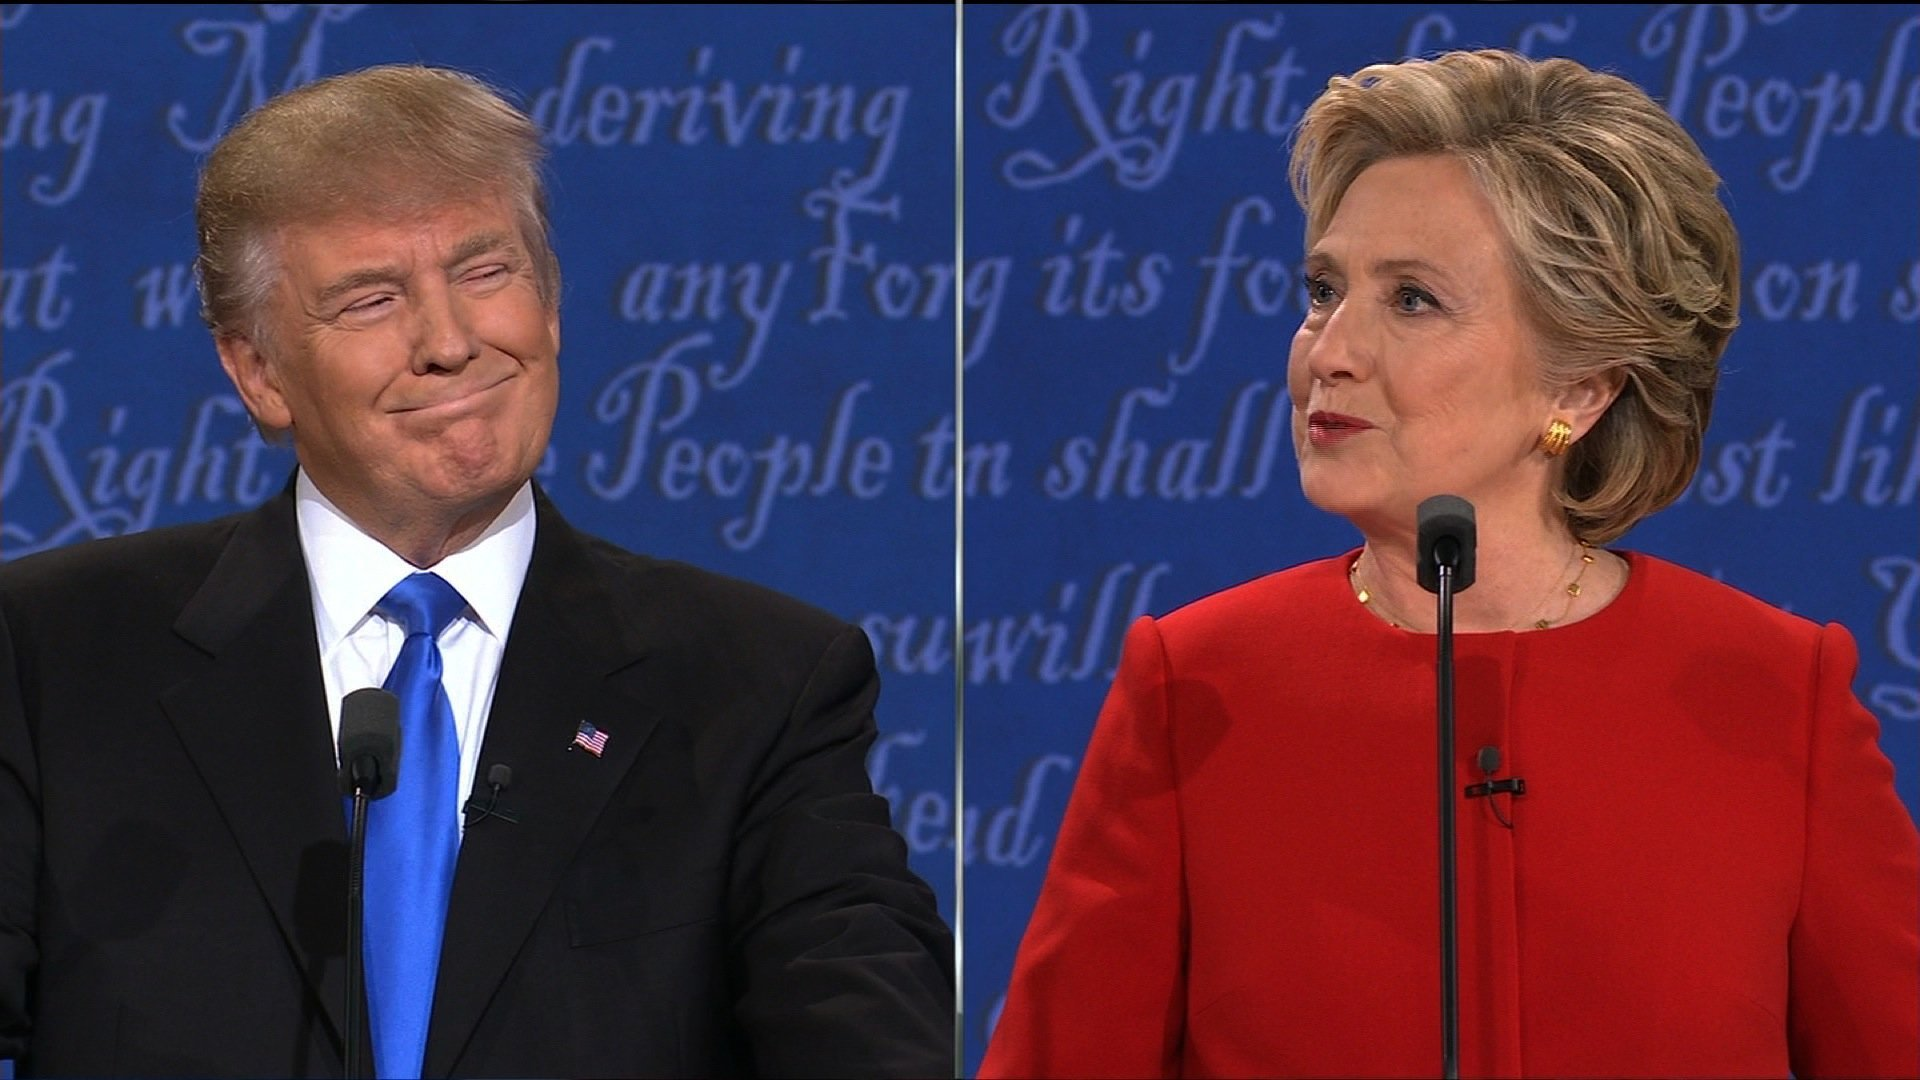 A Bad Lip Reading: Debate Night!